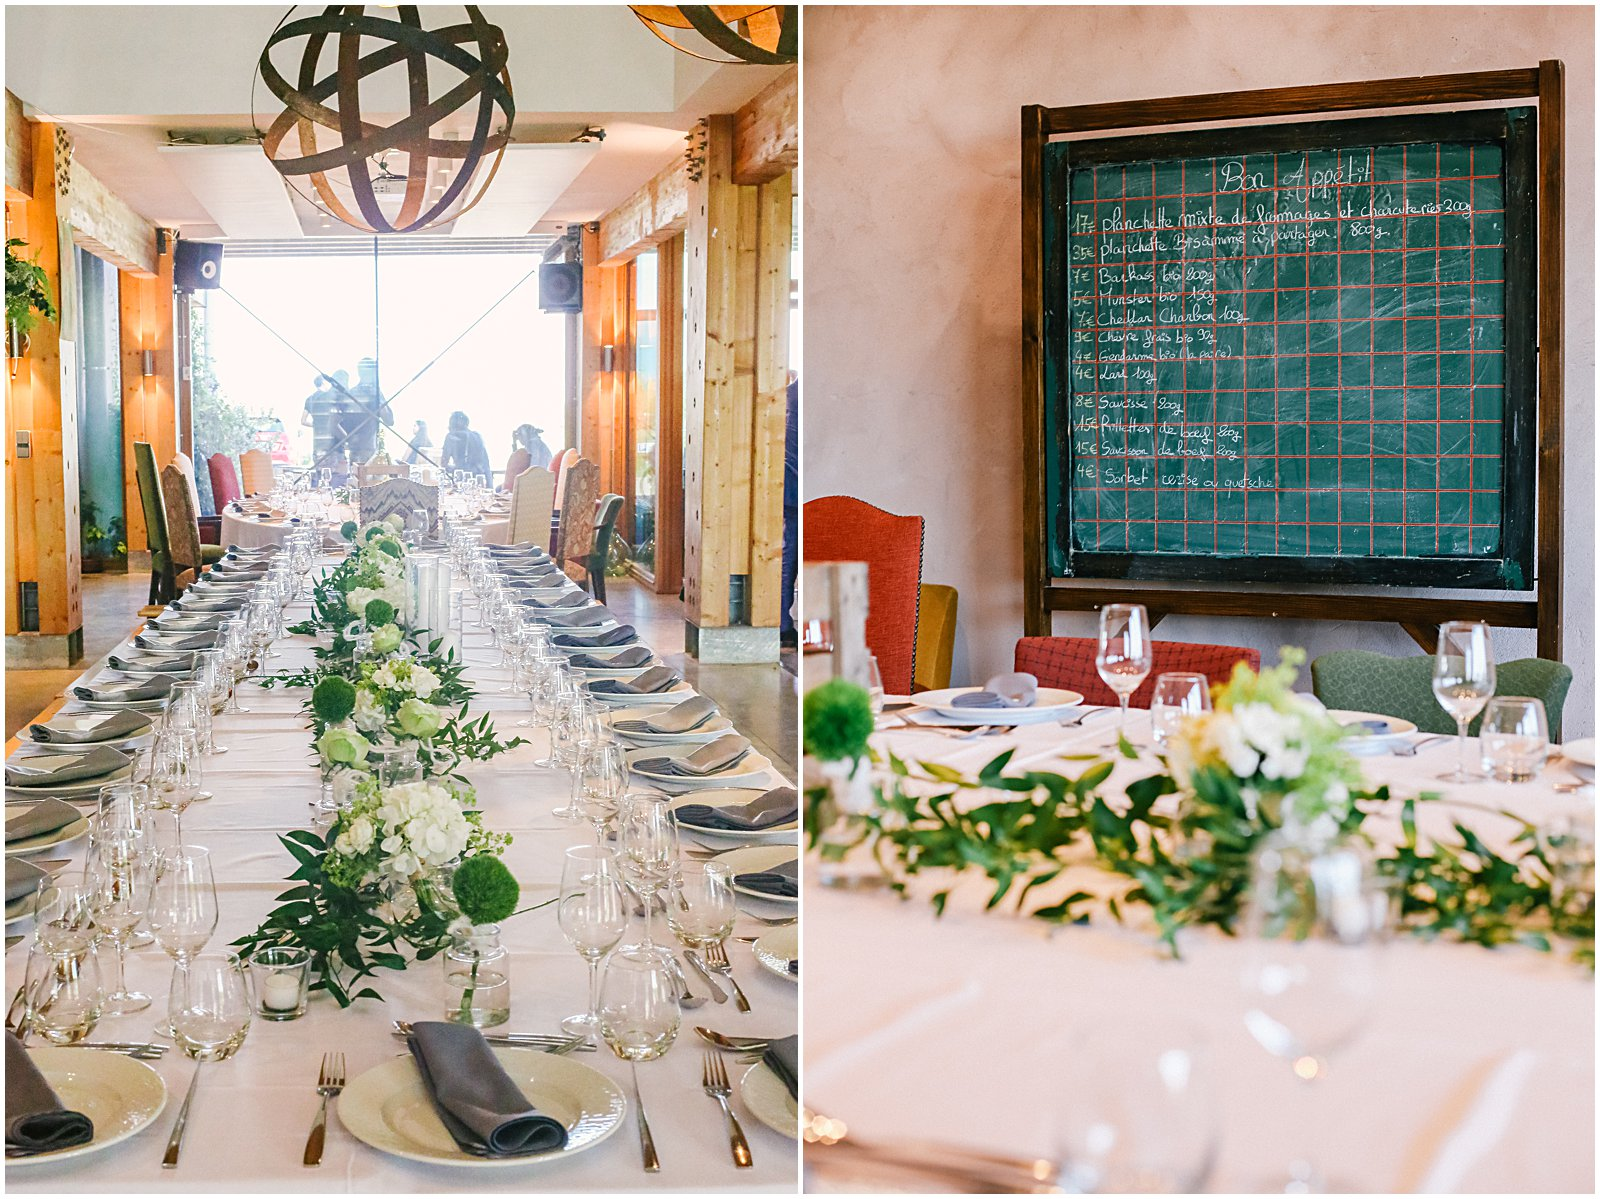 Reception at Achilles Domaine Winery and Vineyards wedding in Alsace France photographed by Helena Woods